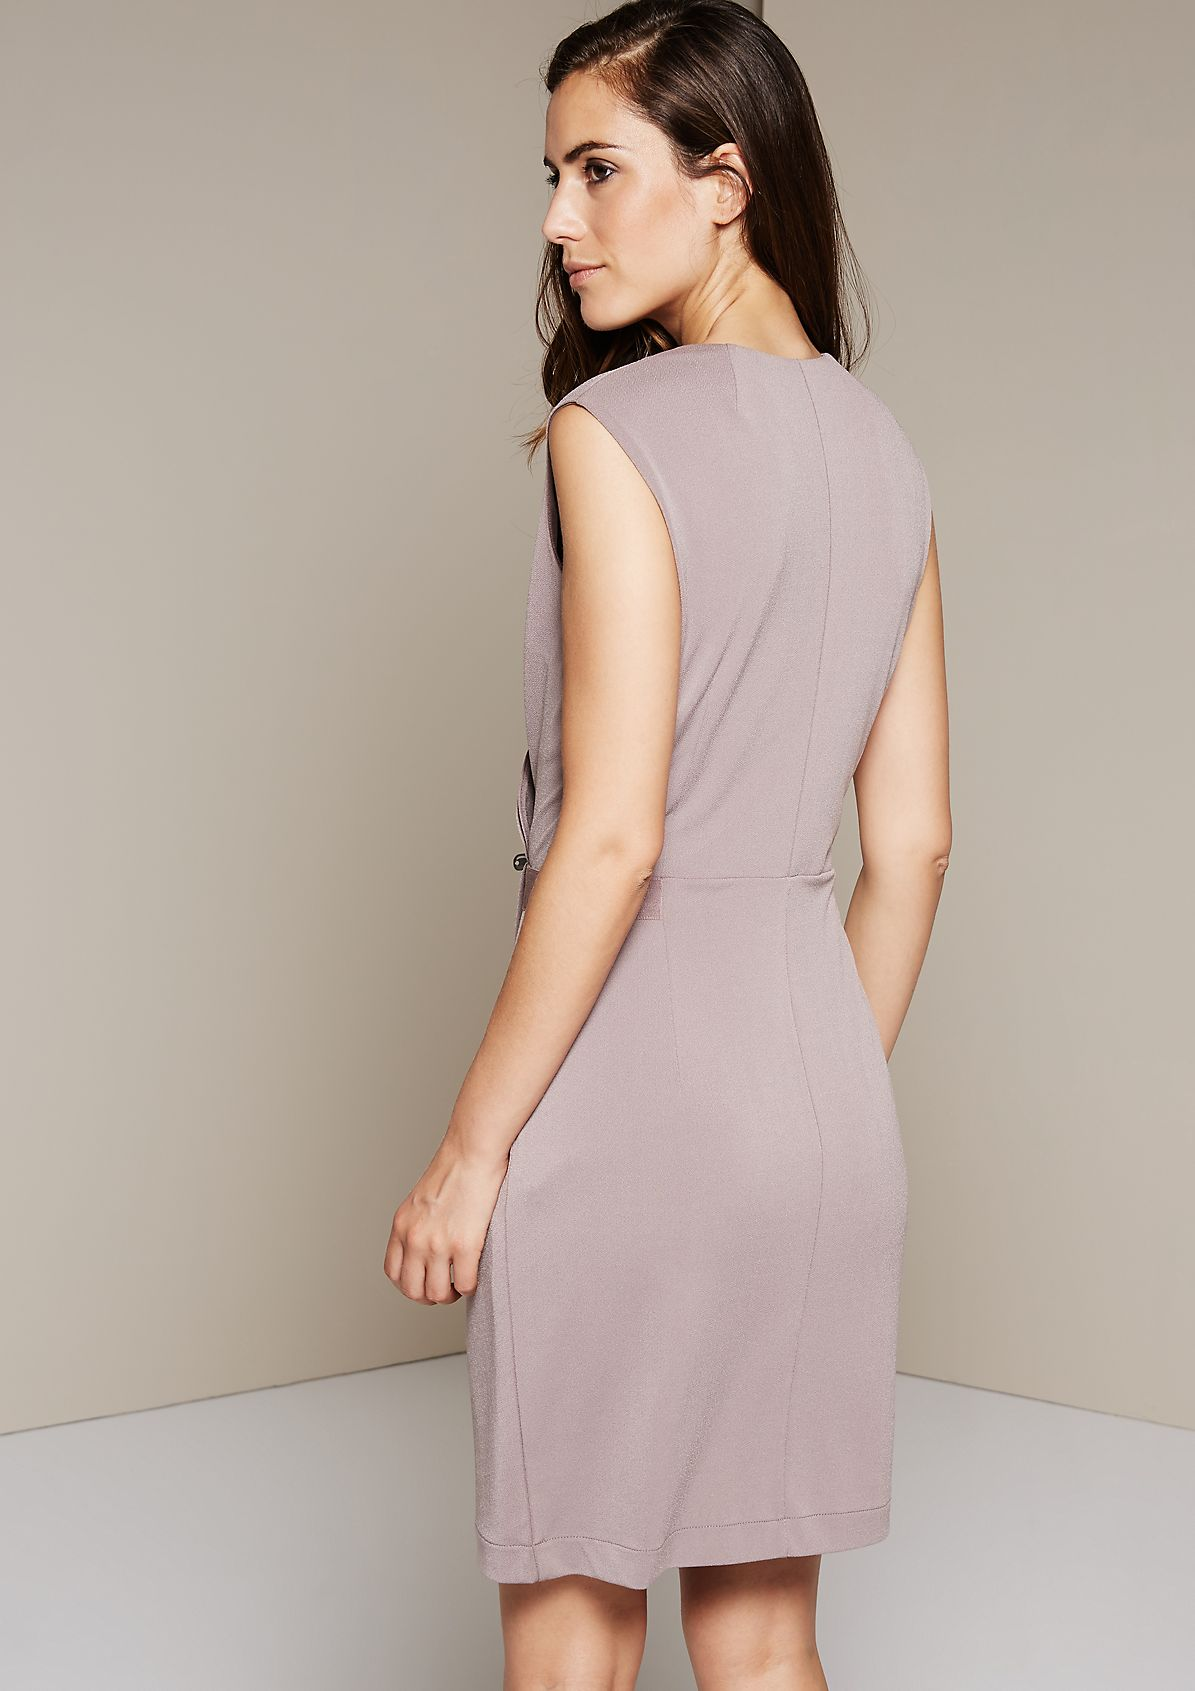 Elegant crêpe evening dress with sophisticated details from s.Oliver